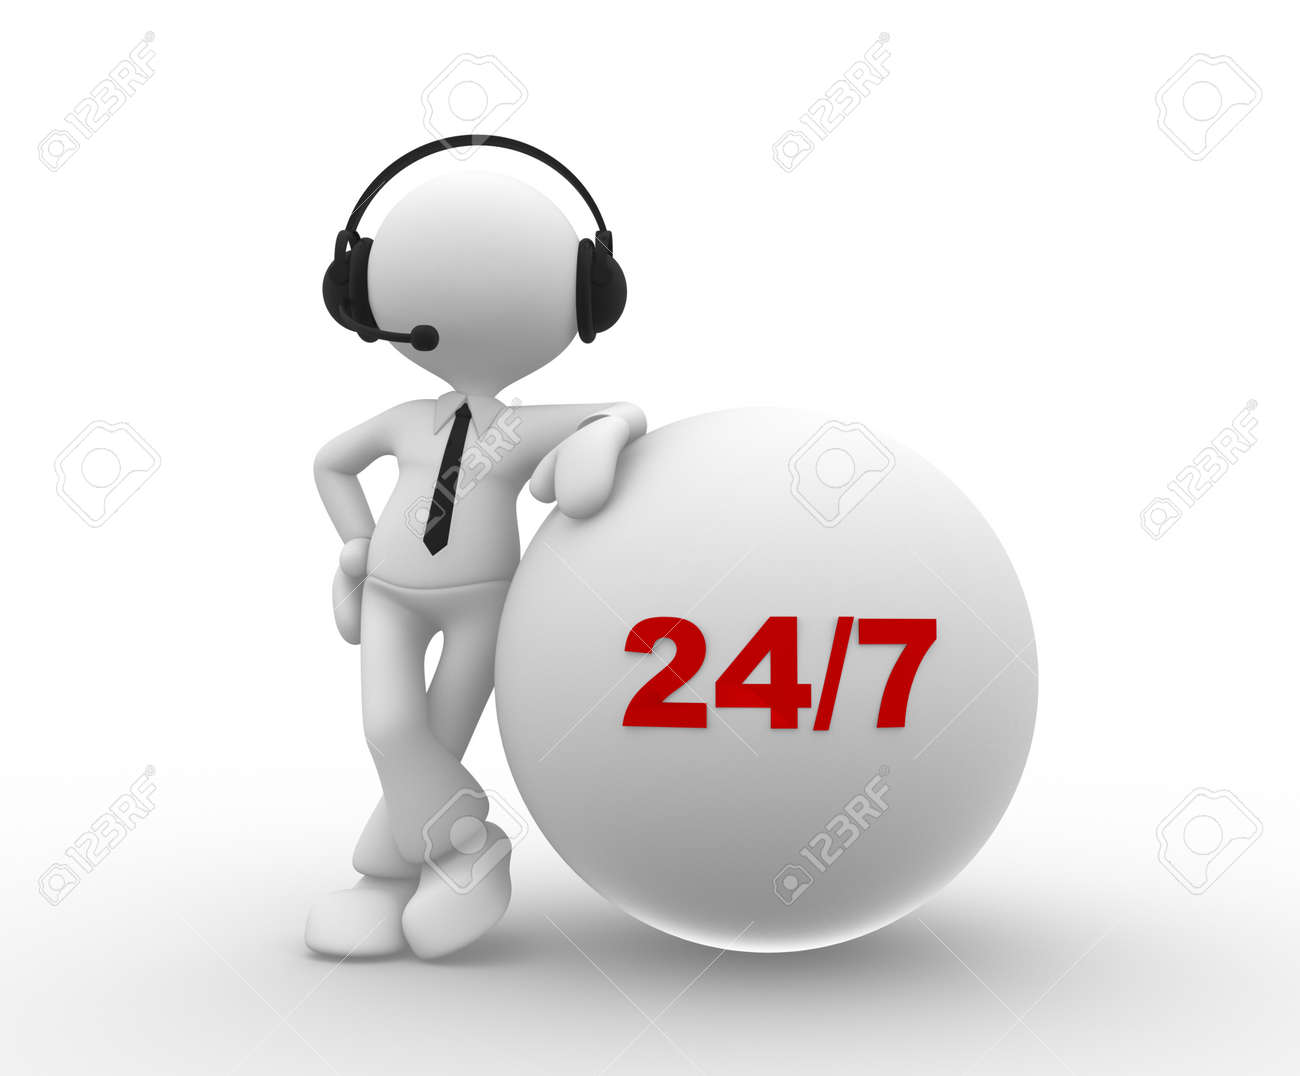 3d people - man, person with headphone and 24/7 Stock Photo - 25491464